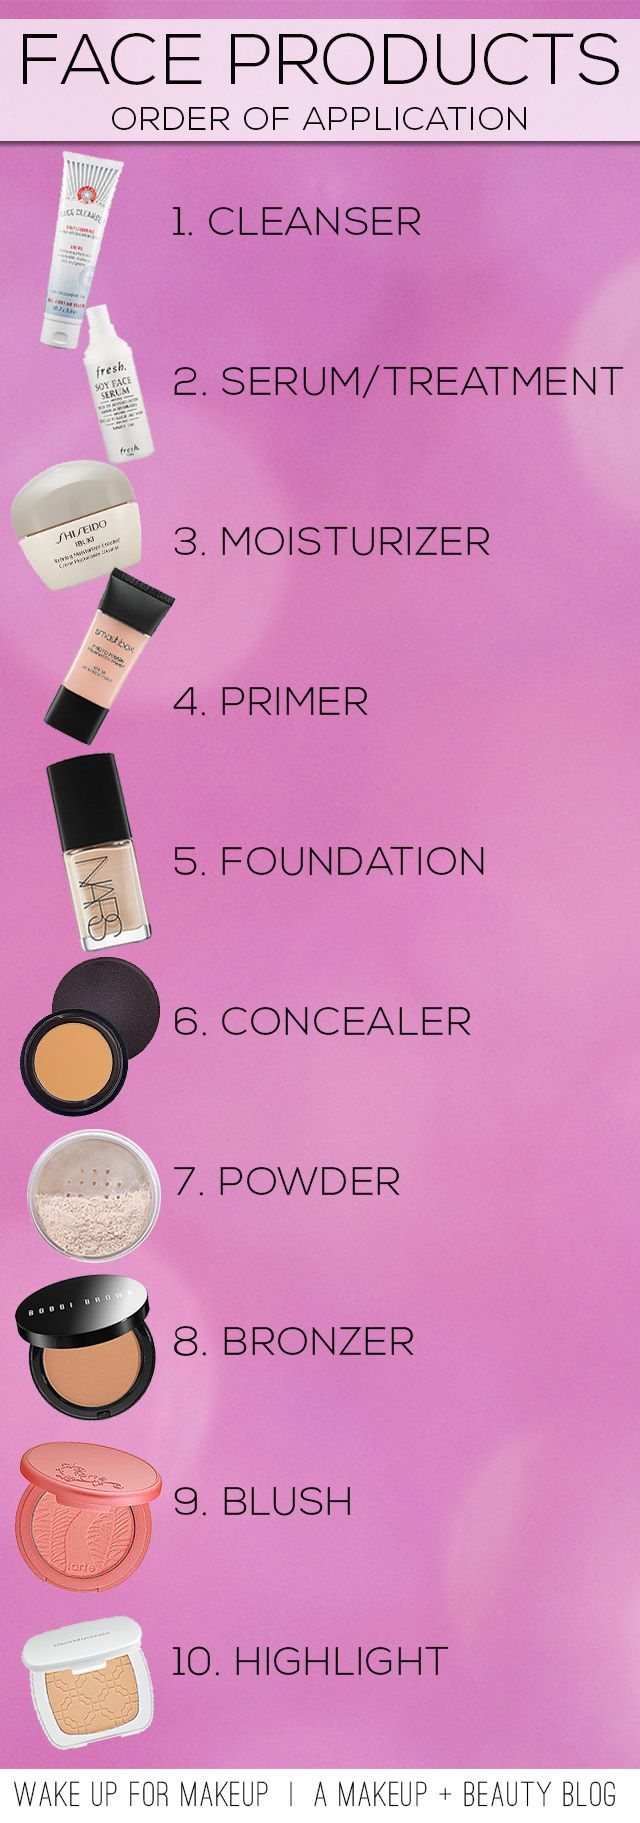 I do all these steps except primer, powder and highlighter in this order and my